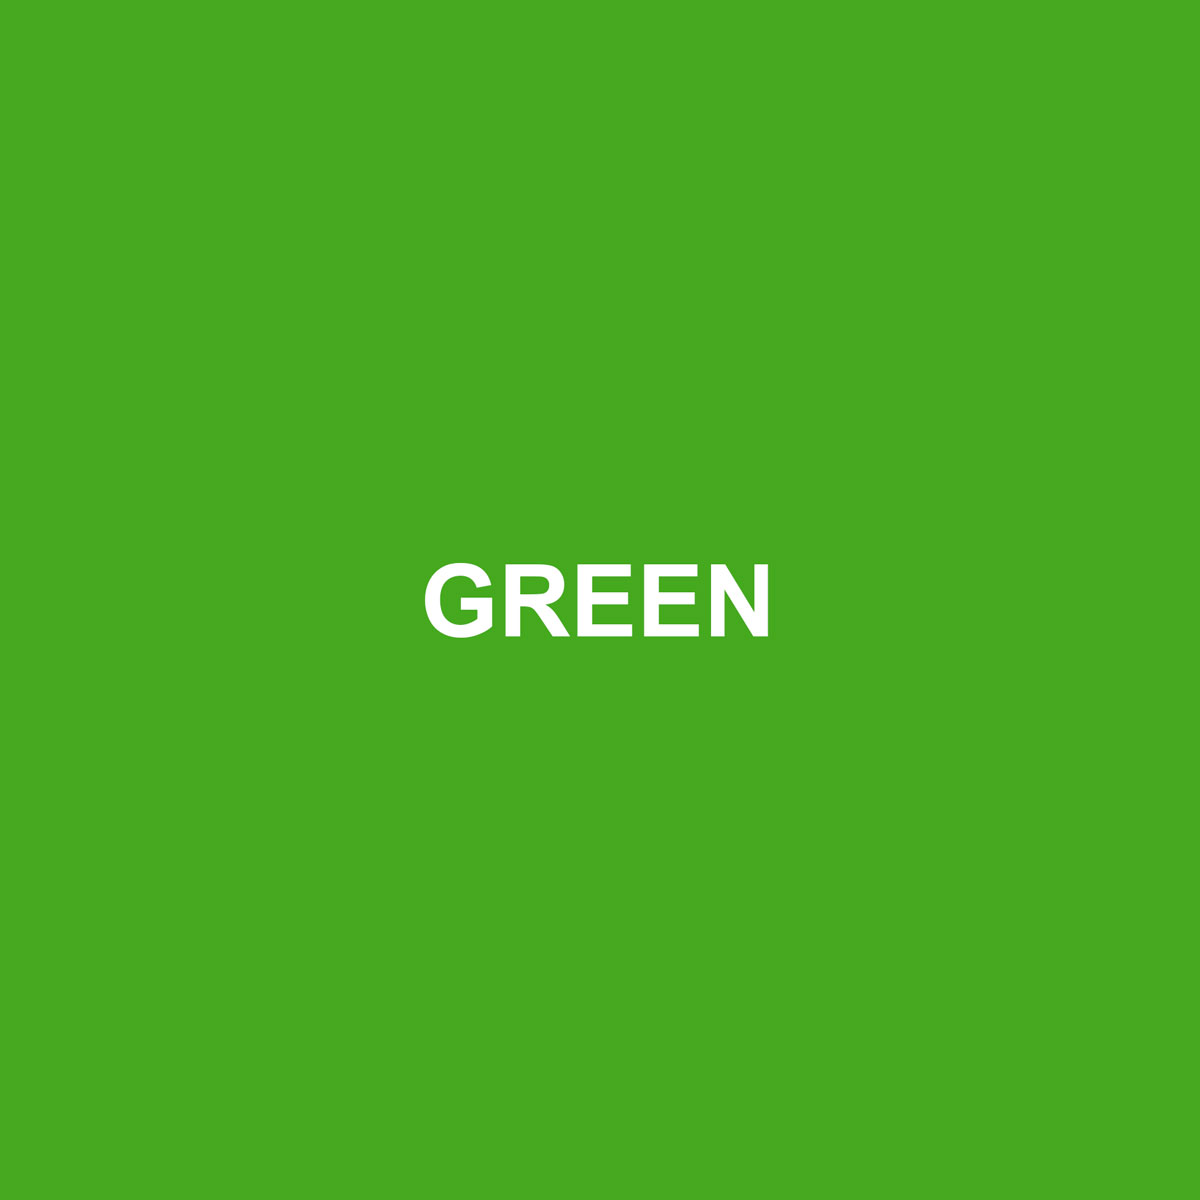 GREEN_#ATHLETICUNION.jpg